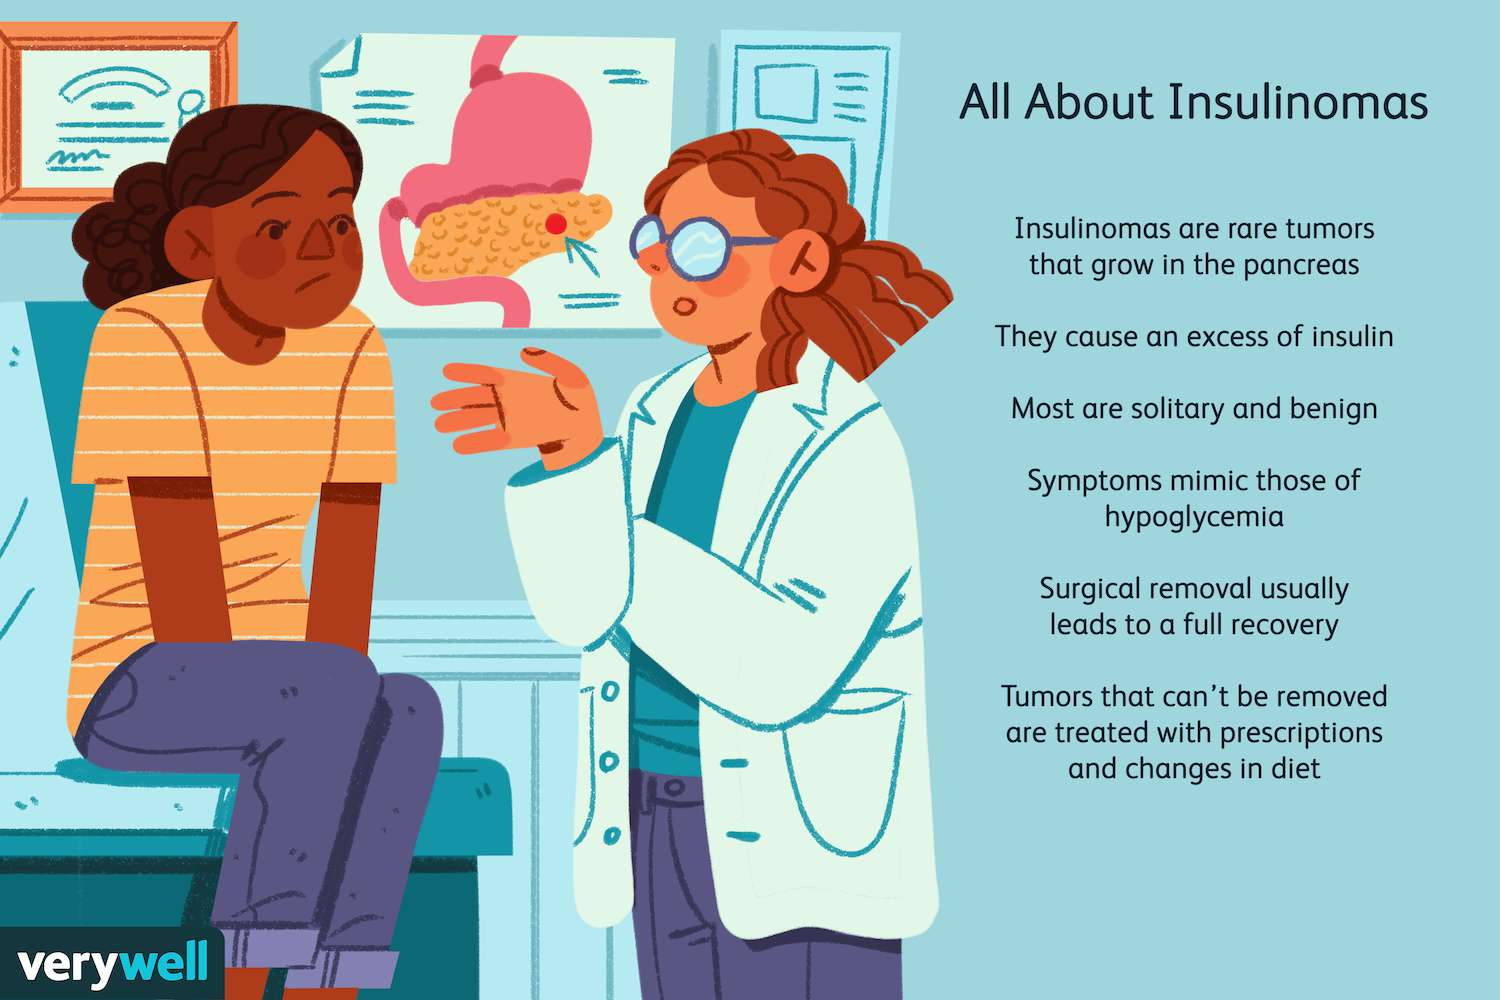 All about Insulinomas